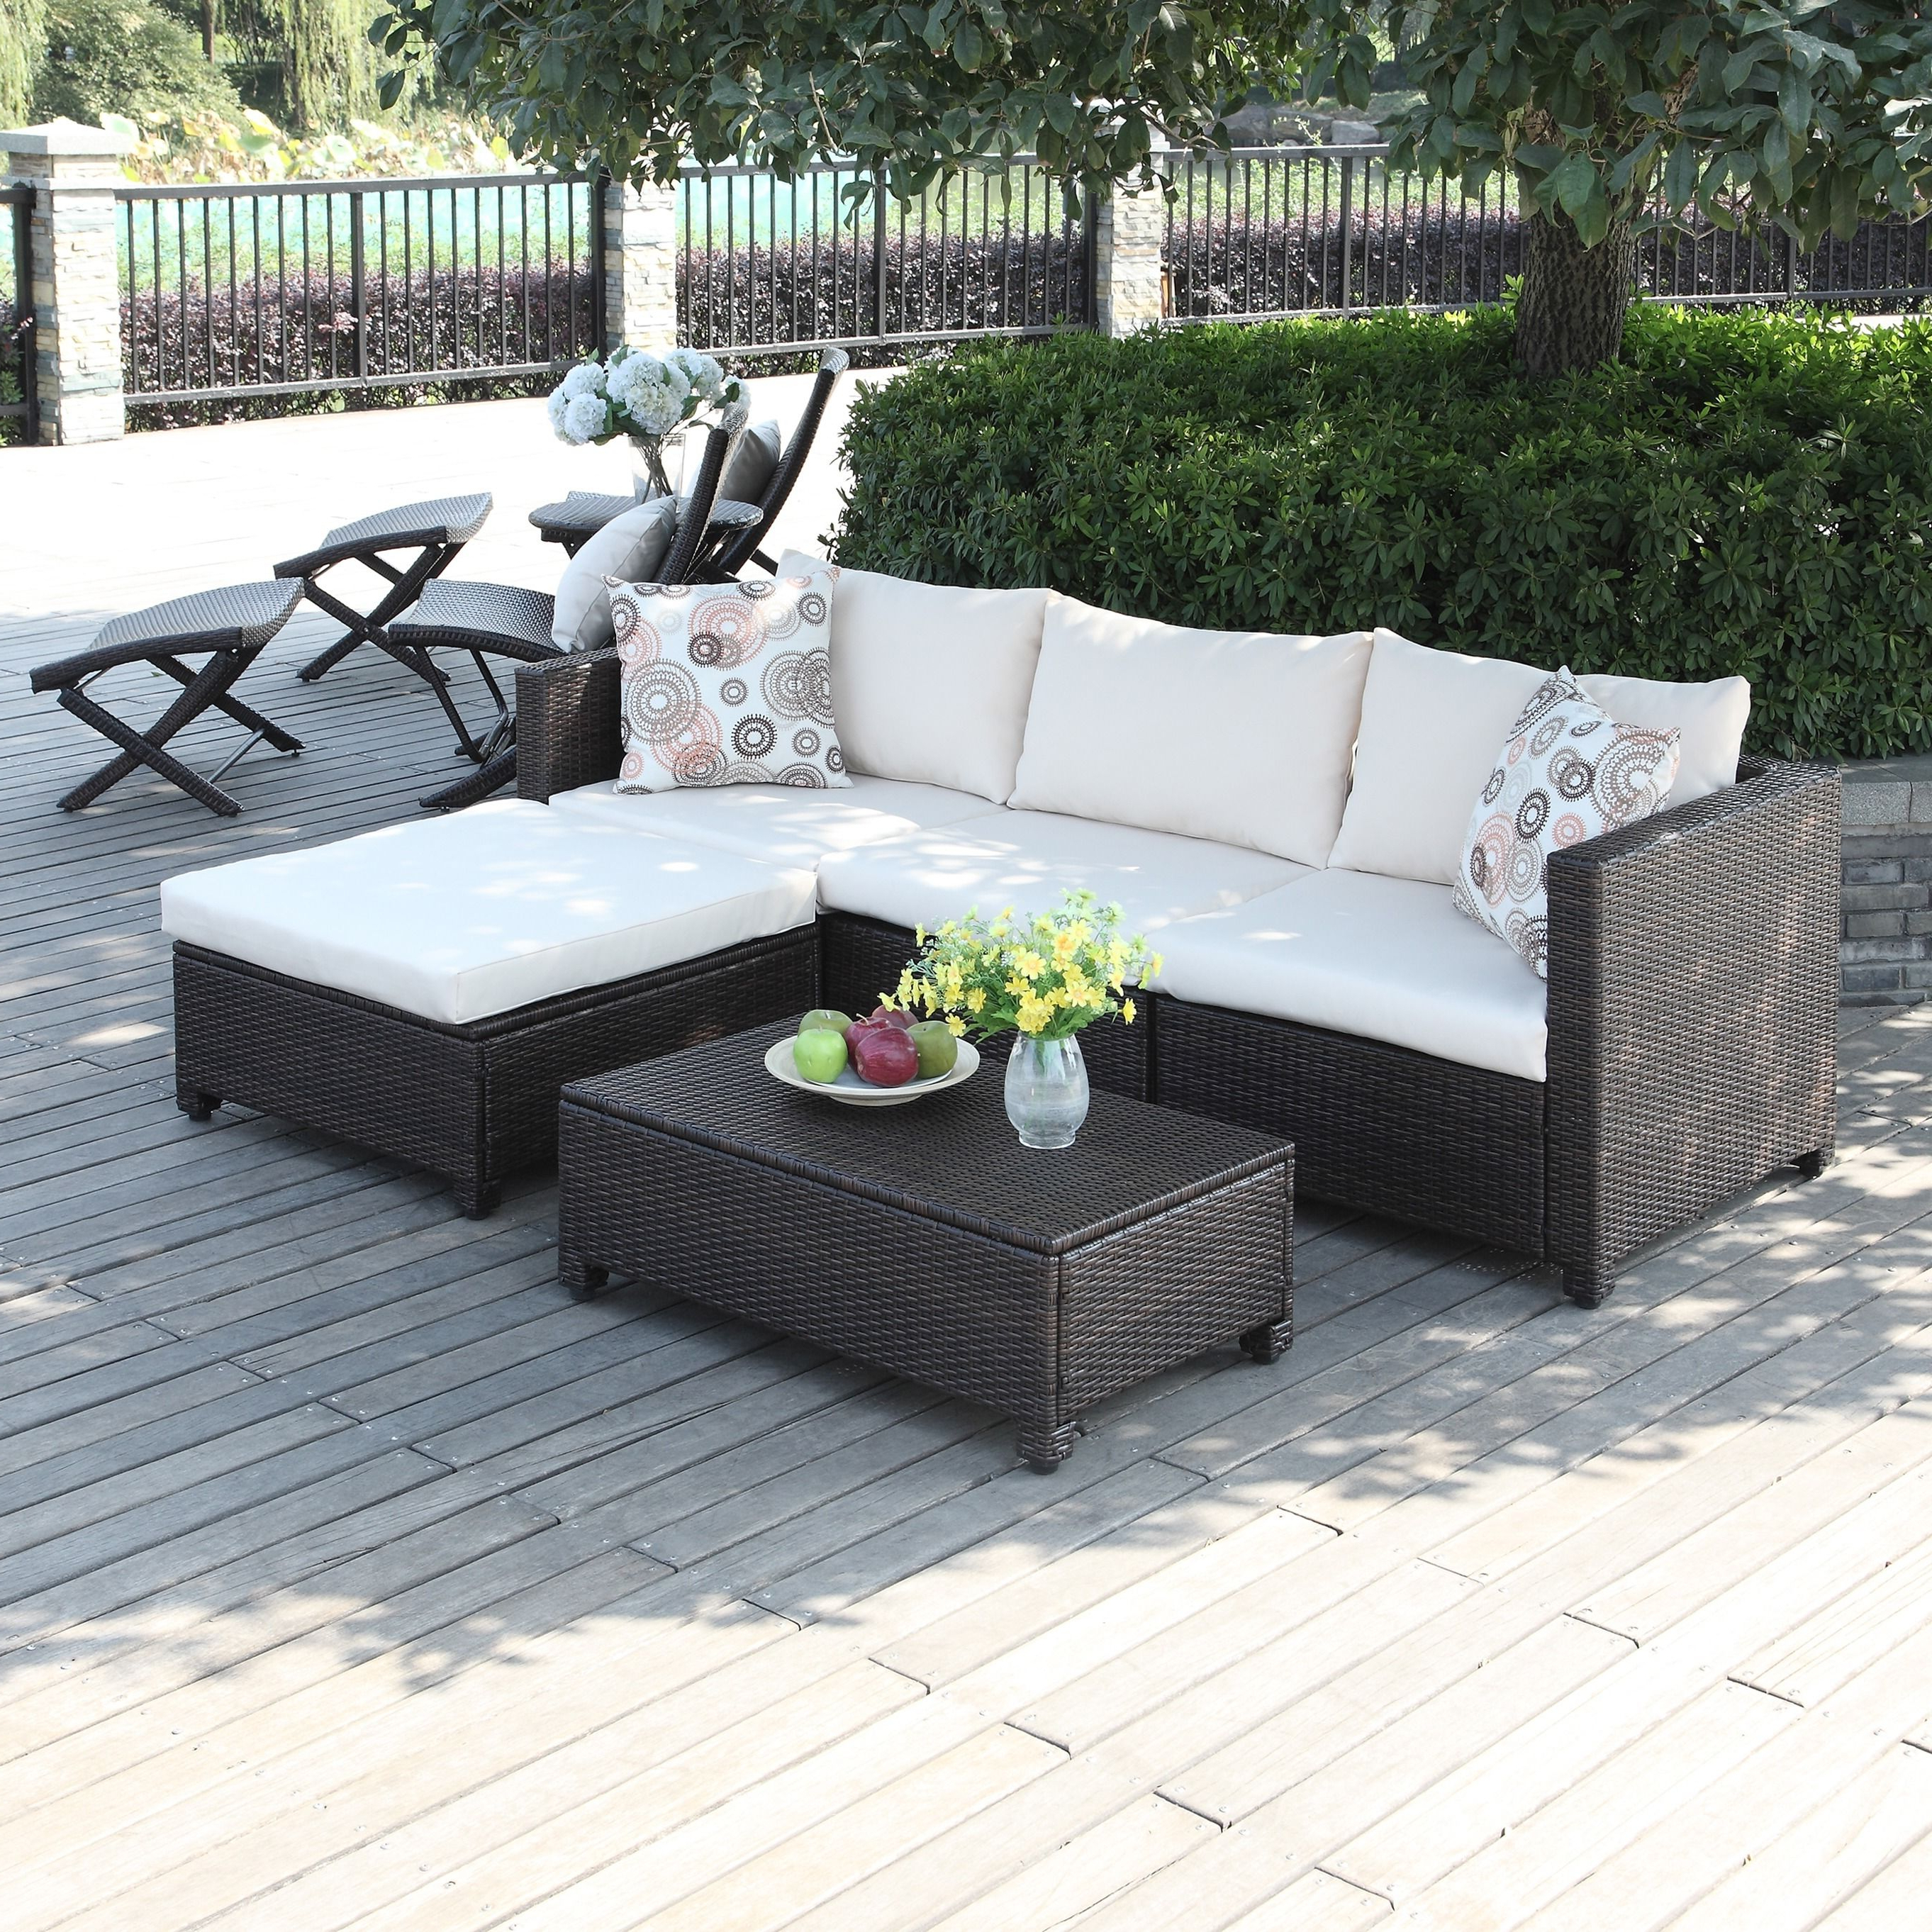 The Portfolio Aldrich 5 Piece Set Features 2 Corner Chairs Within 2020 Stockwell Patio Sofas With Cushions (View 18 of 20)